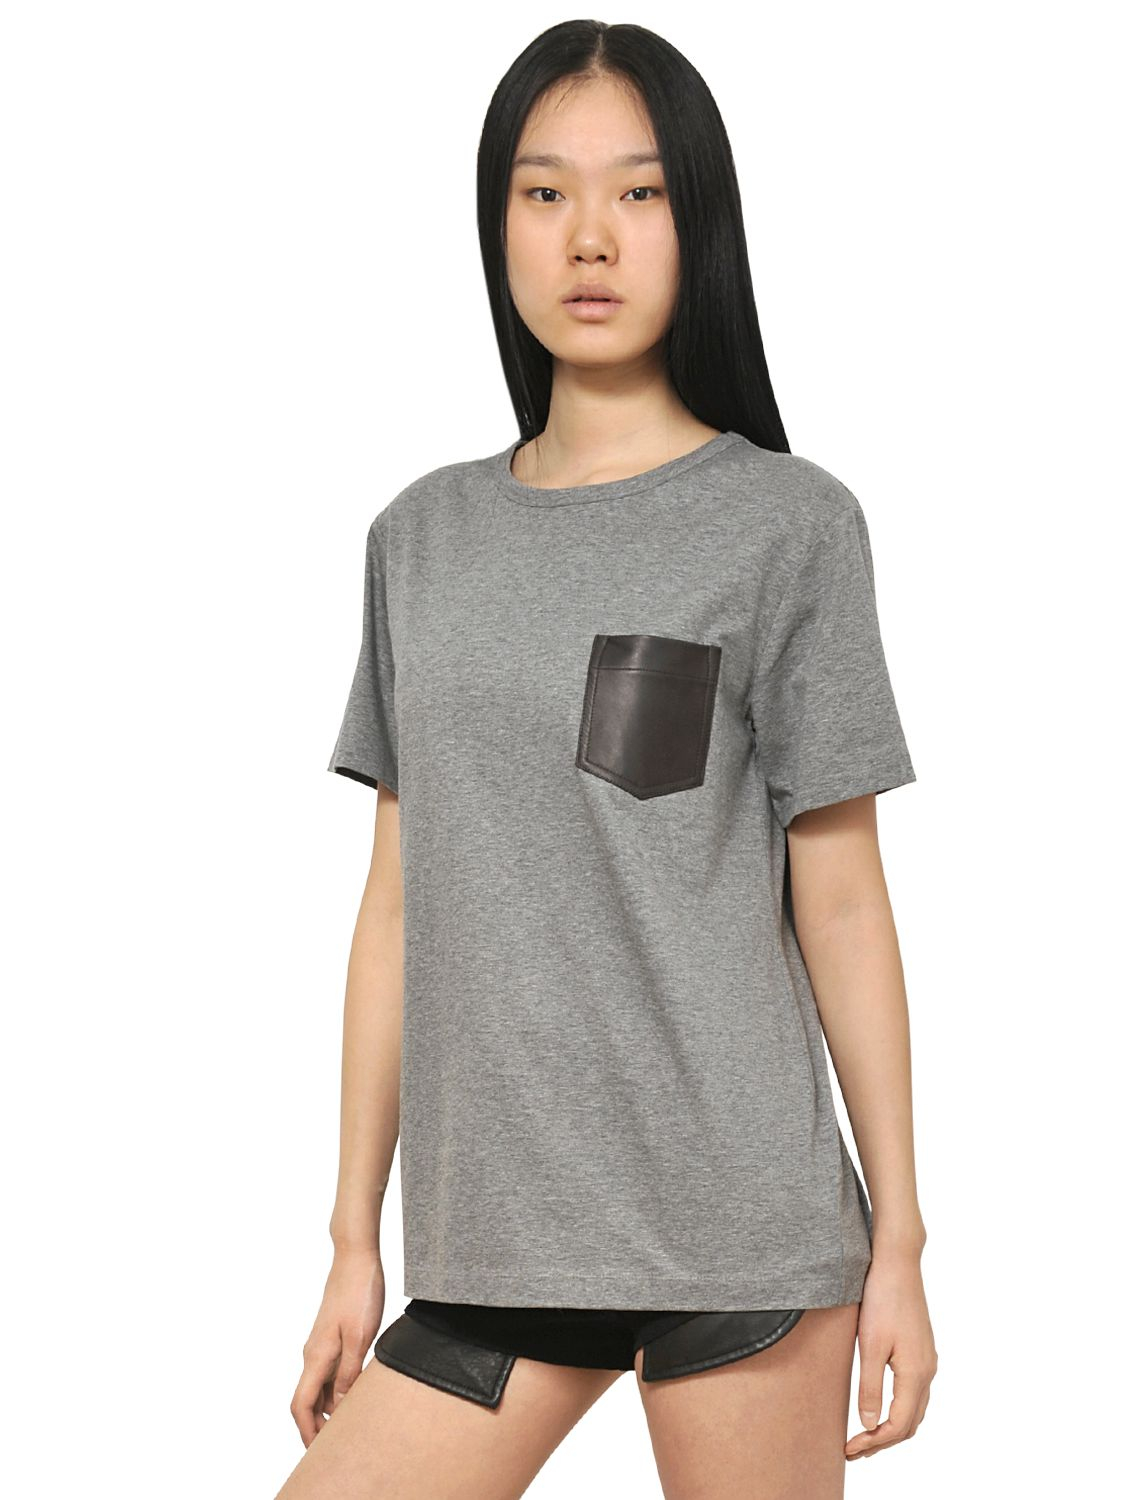 Alexander wang t collection pima cotton jersey t shirt in for Alexander wang t shirts